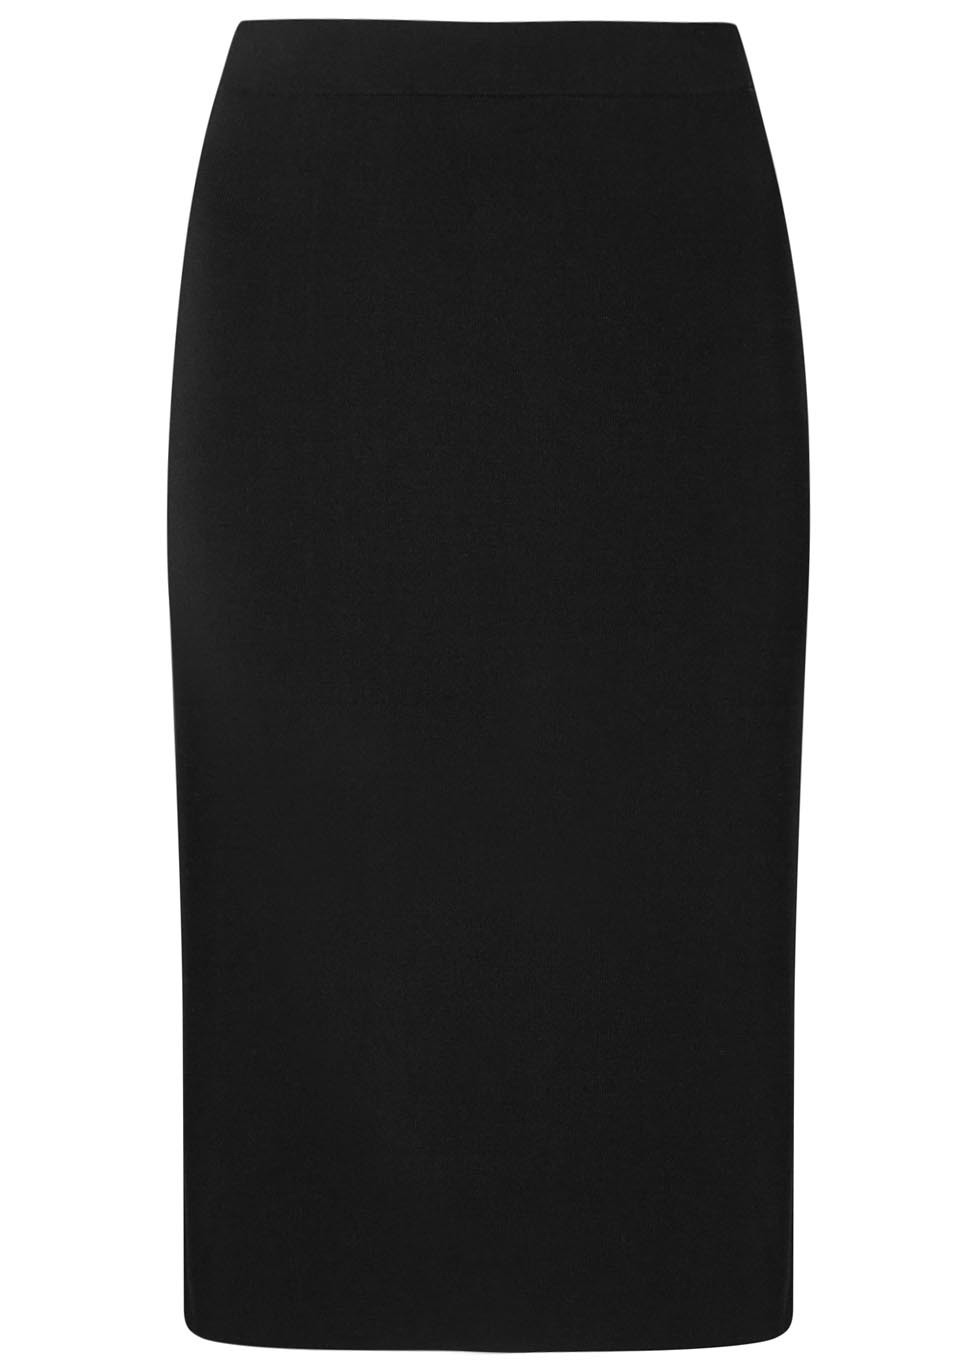 Lucine Black Jersey Pencil Skirt - length: below the knee; pattern: plain; style: pencil; fit: tailored/fitted; waist: mid/regular rise; predominant colour: black; occasions: work; pattern type: fabric; texture group: jersey - stretchy/drapey; fibres: viscose/rayon - mix; season: s/s 2016; wardrobe: basic